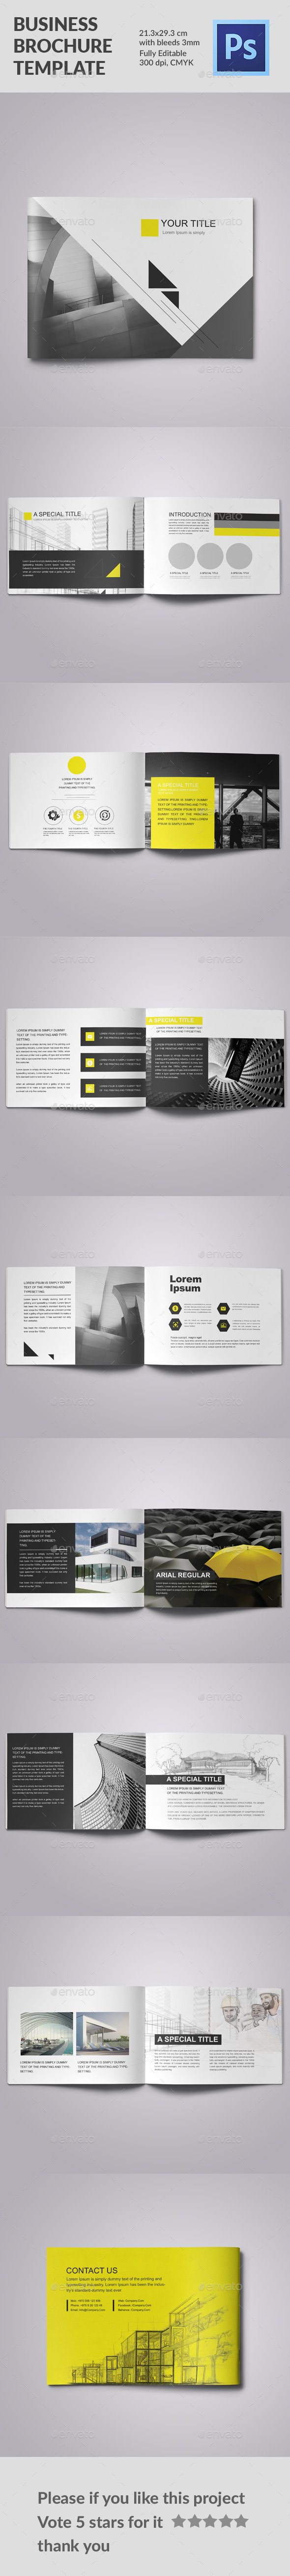 Business Brochure Yellow Triangle Template #design Buy Now: http://graphicriver.net/item/business-brochure-yellow-triangle/12850738?ref=ksioks